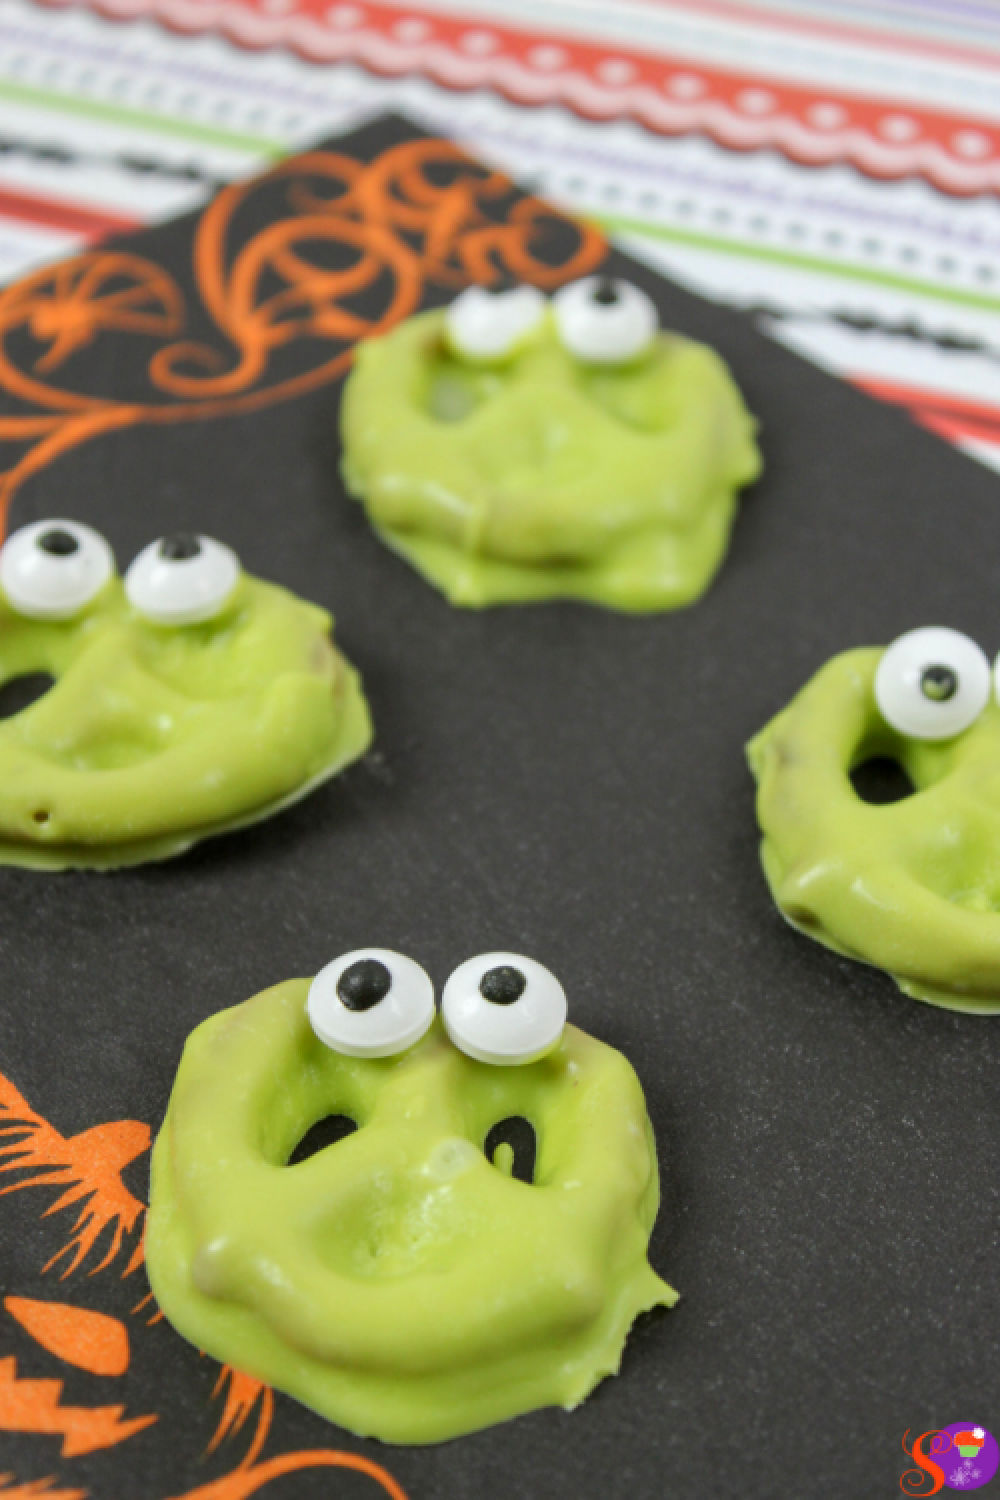 Pretzels are dipped into bright green melted chocolate, then candy eyes are added for a silly monster look in this no-bake Halloween Monster Pretzel recipe  the whole family will enjoy!